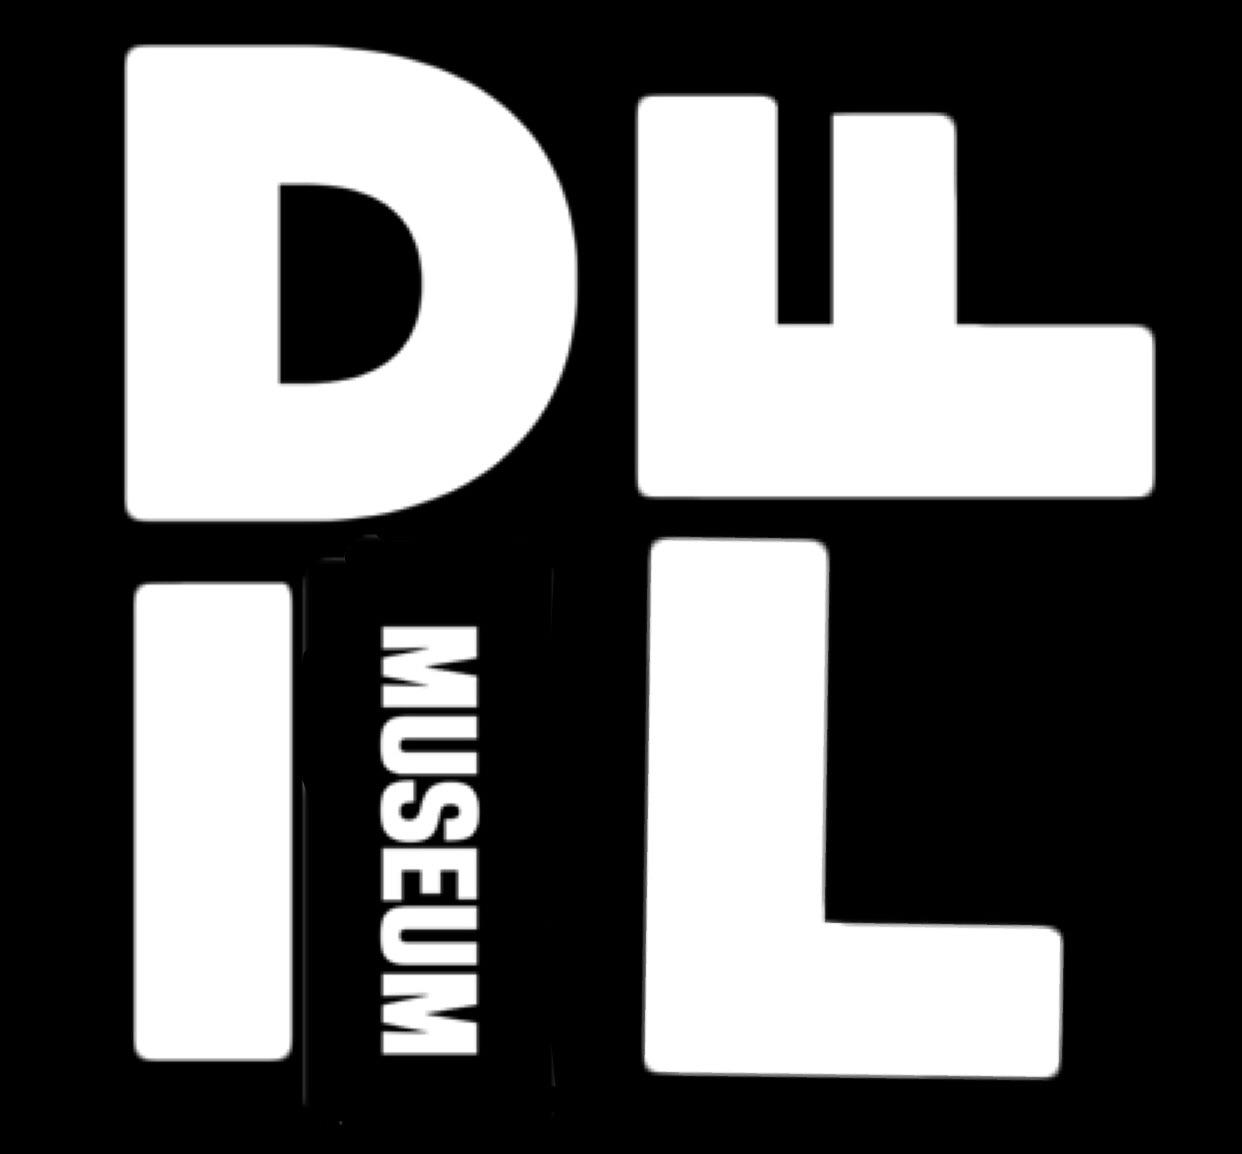 So, The Field Museum of Chicago got a new logo : lossedits.